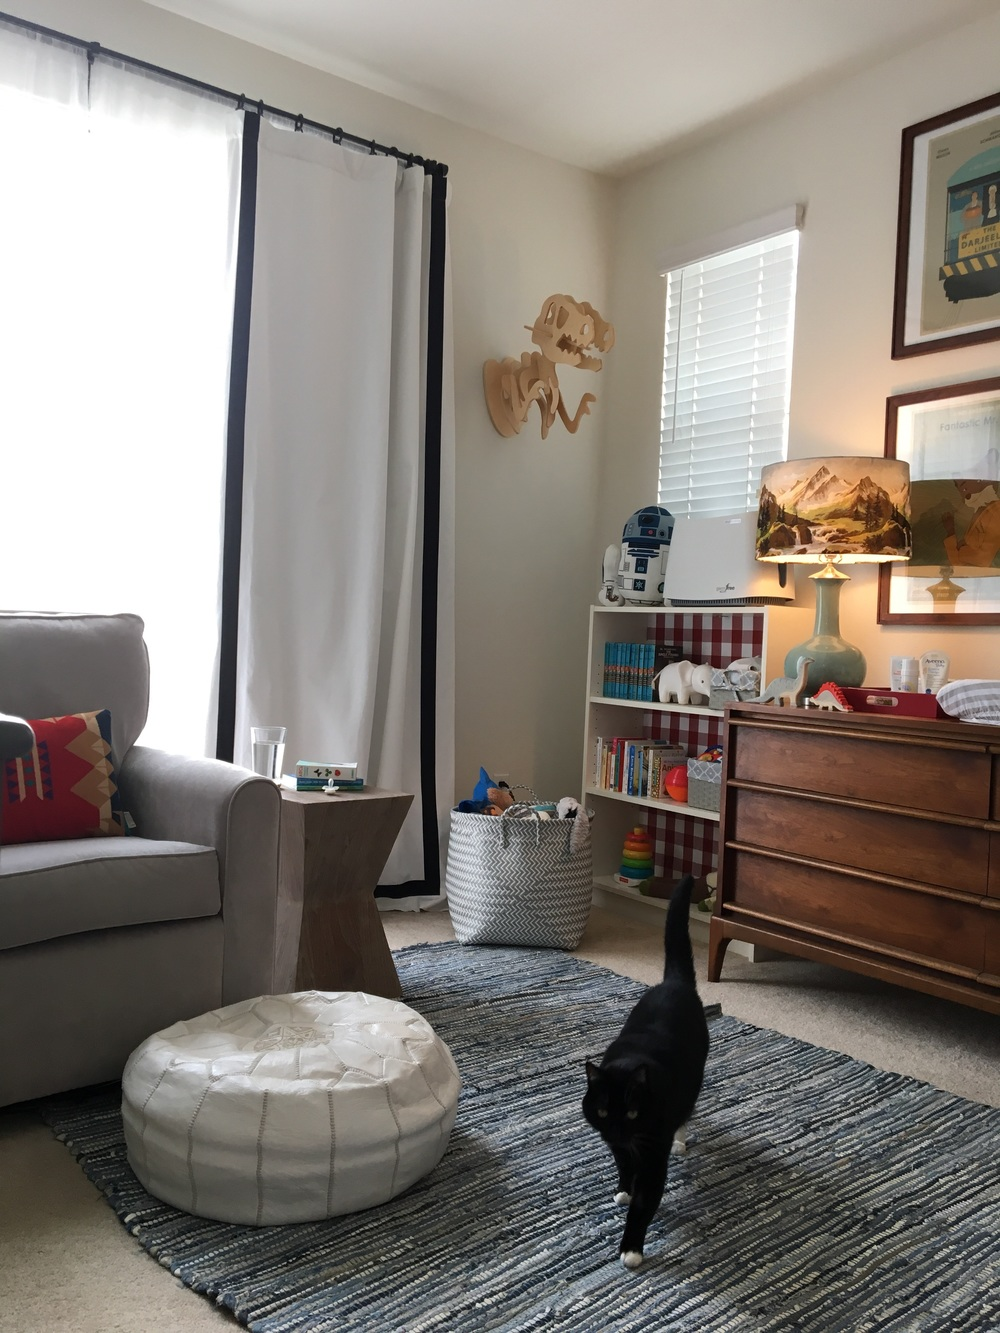 We reused the shelves, curtains, and pouf from when this room was my office.